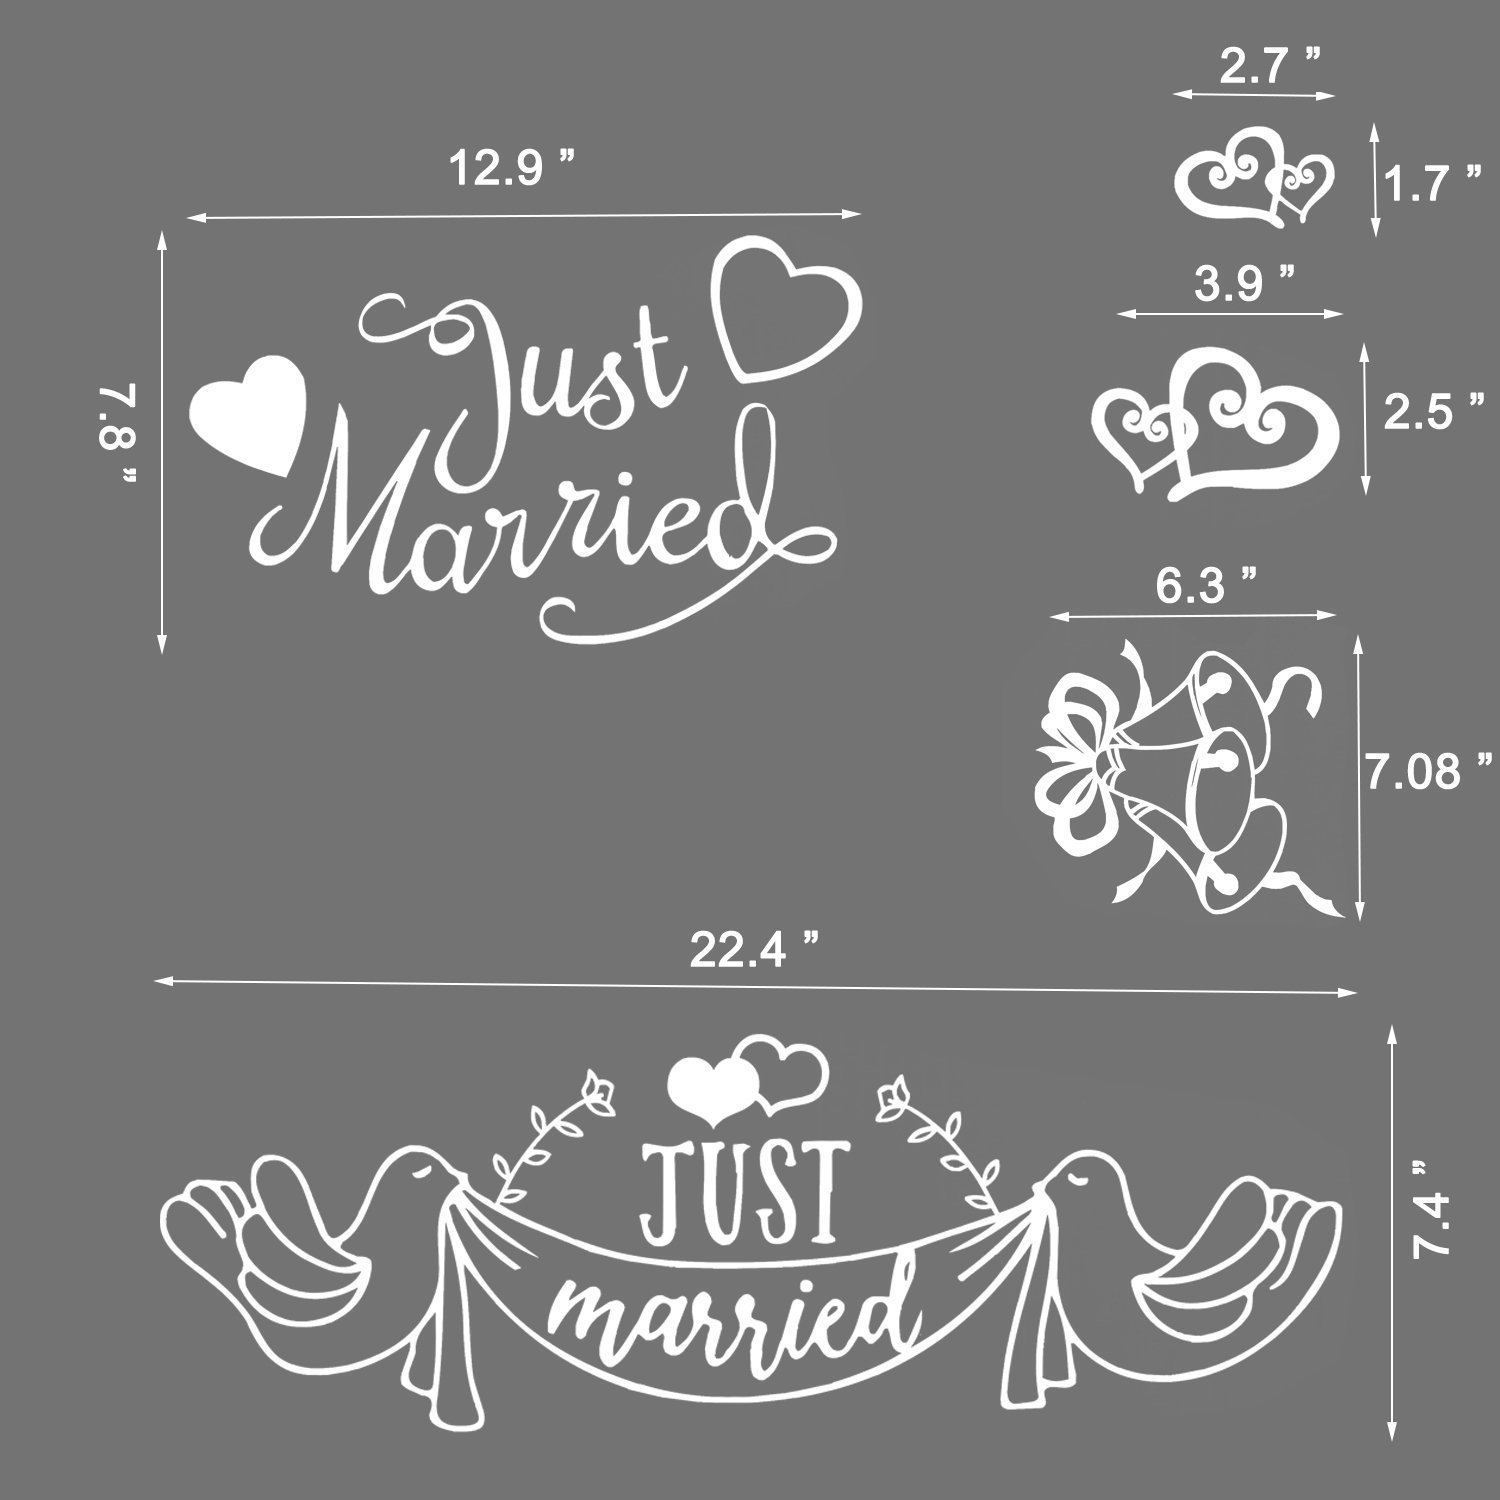 Pack of 2 Just Married Car Sticker Vinyl Car Window Decal for Honeymoon Wedding Car Decoration Newlywed Wedding Gift Konsait Just Married Decorations Weatherproof /& Removable